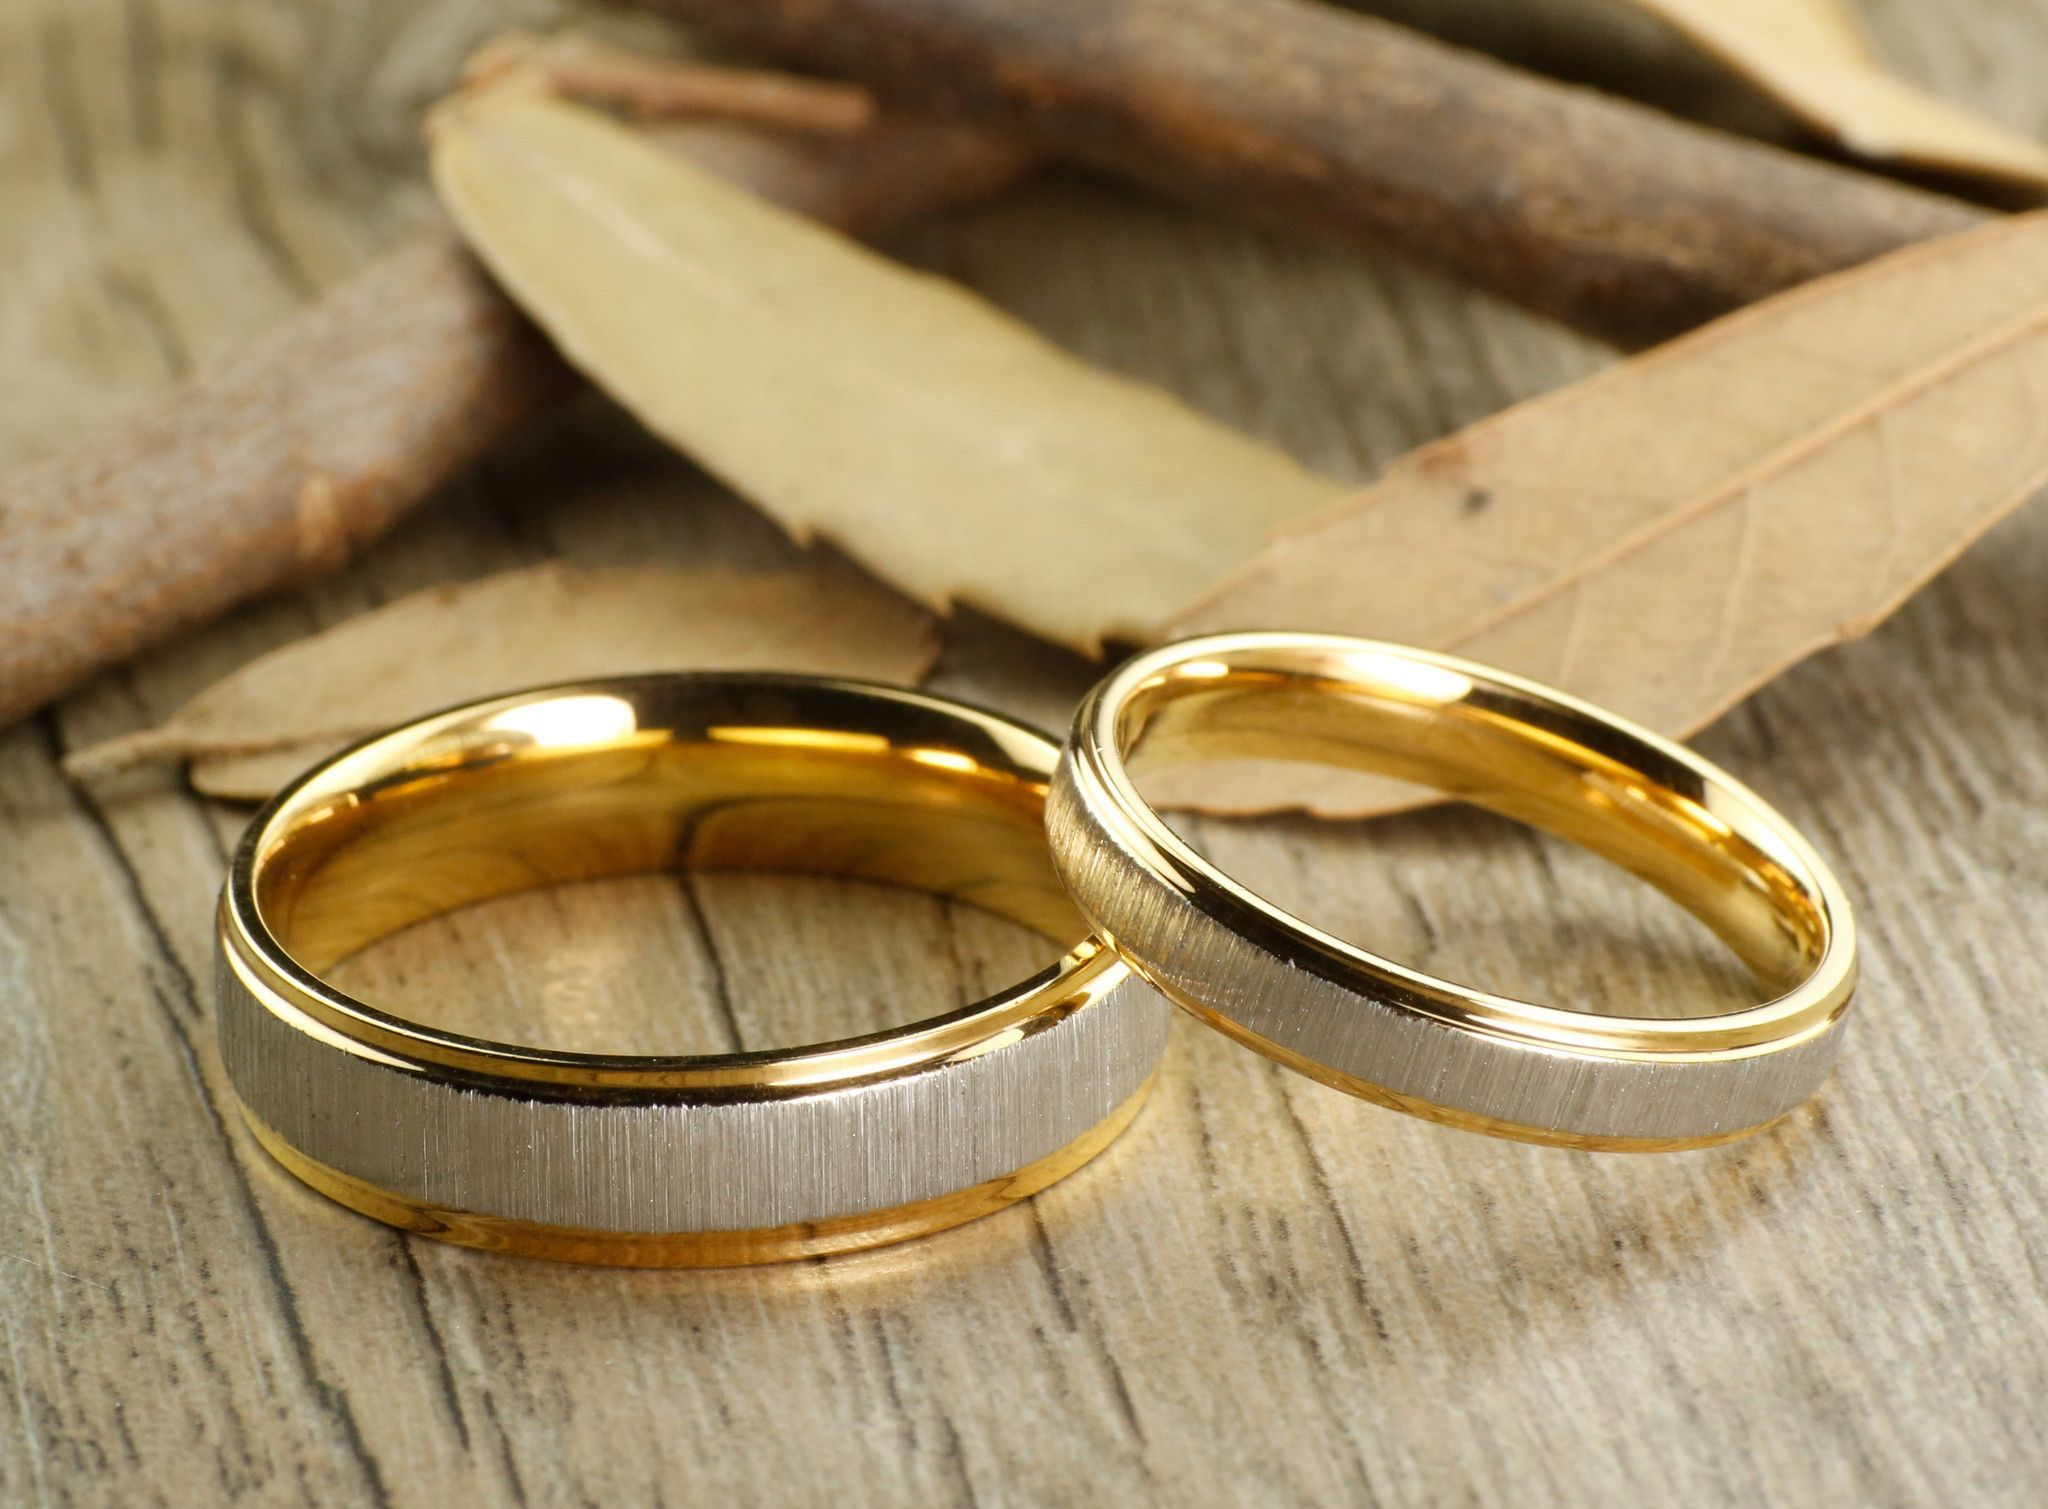 beautiful of bands band ideas with her wedding yellow elegant collection awesome mens idea for rings gold